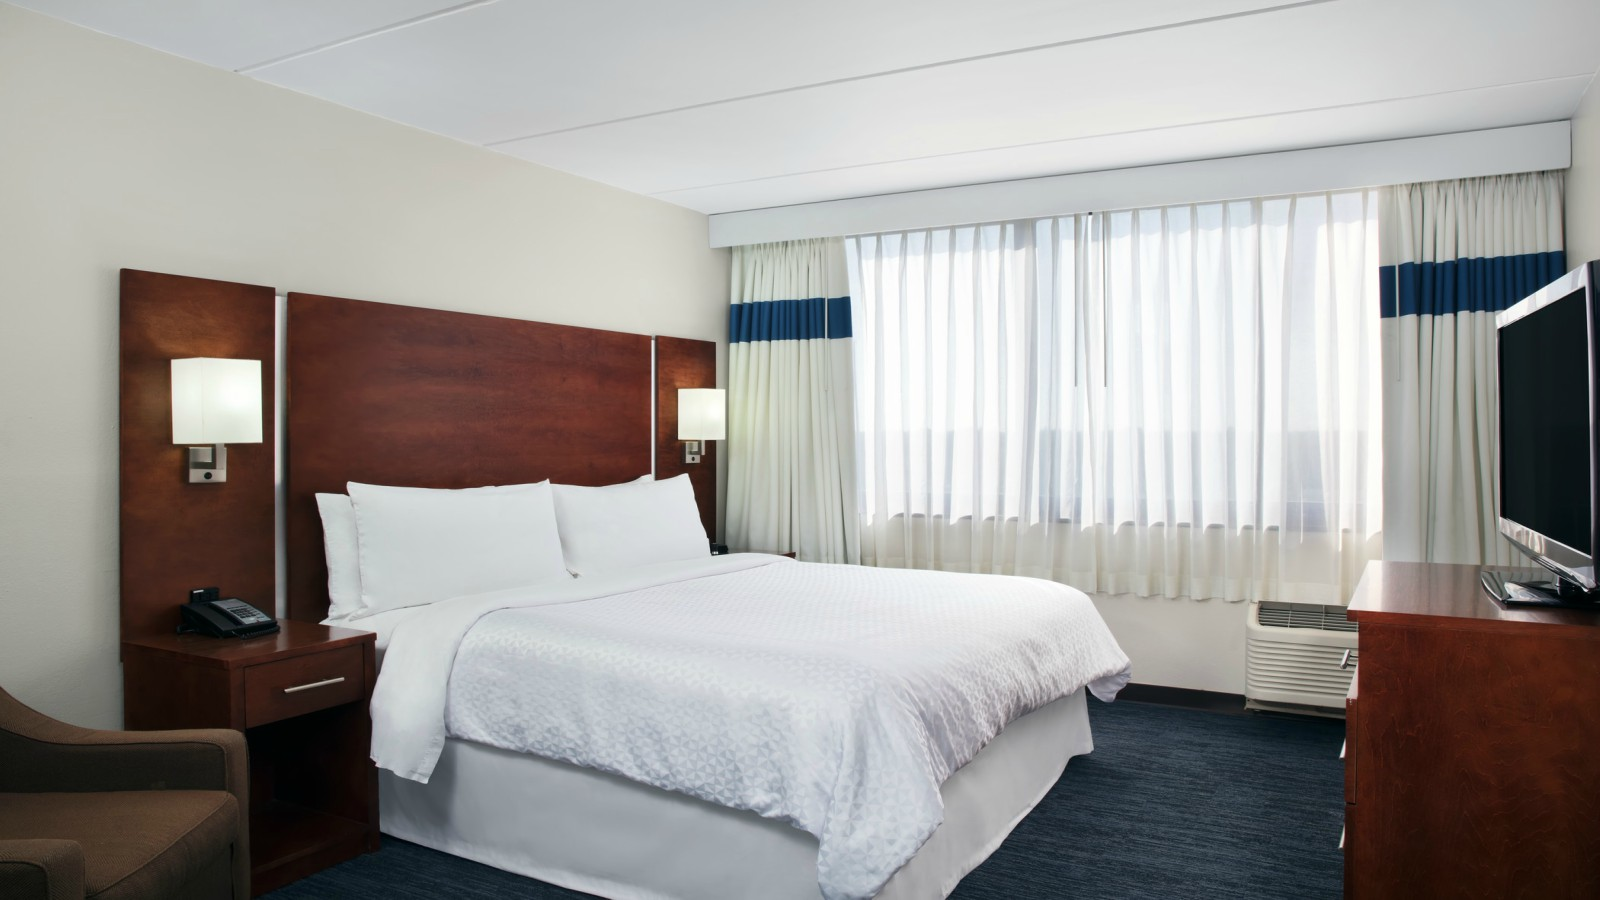 Fort Lauderdale Accommodations - Accessible Room